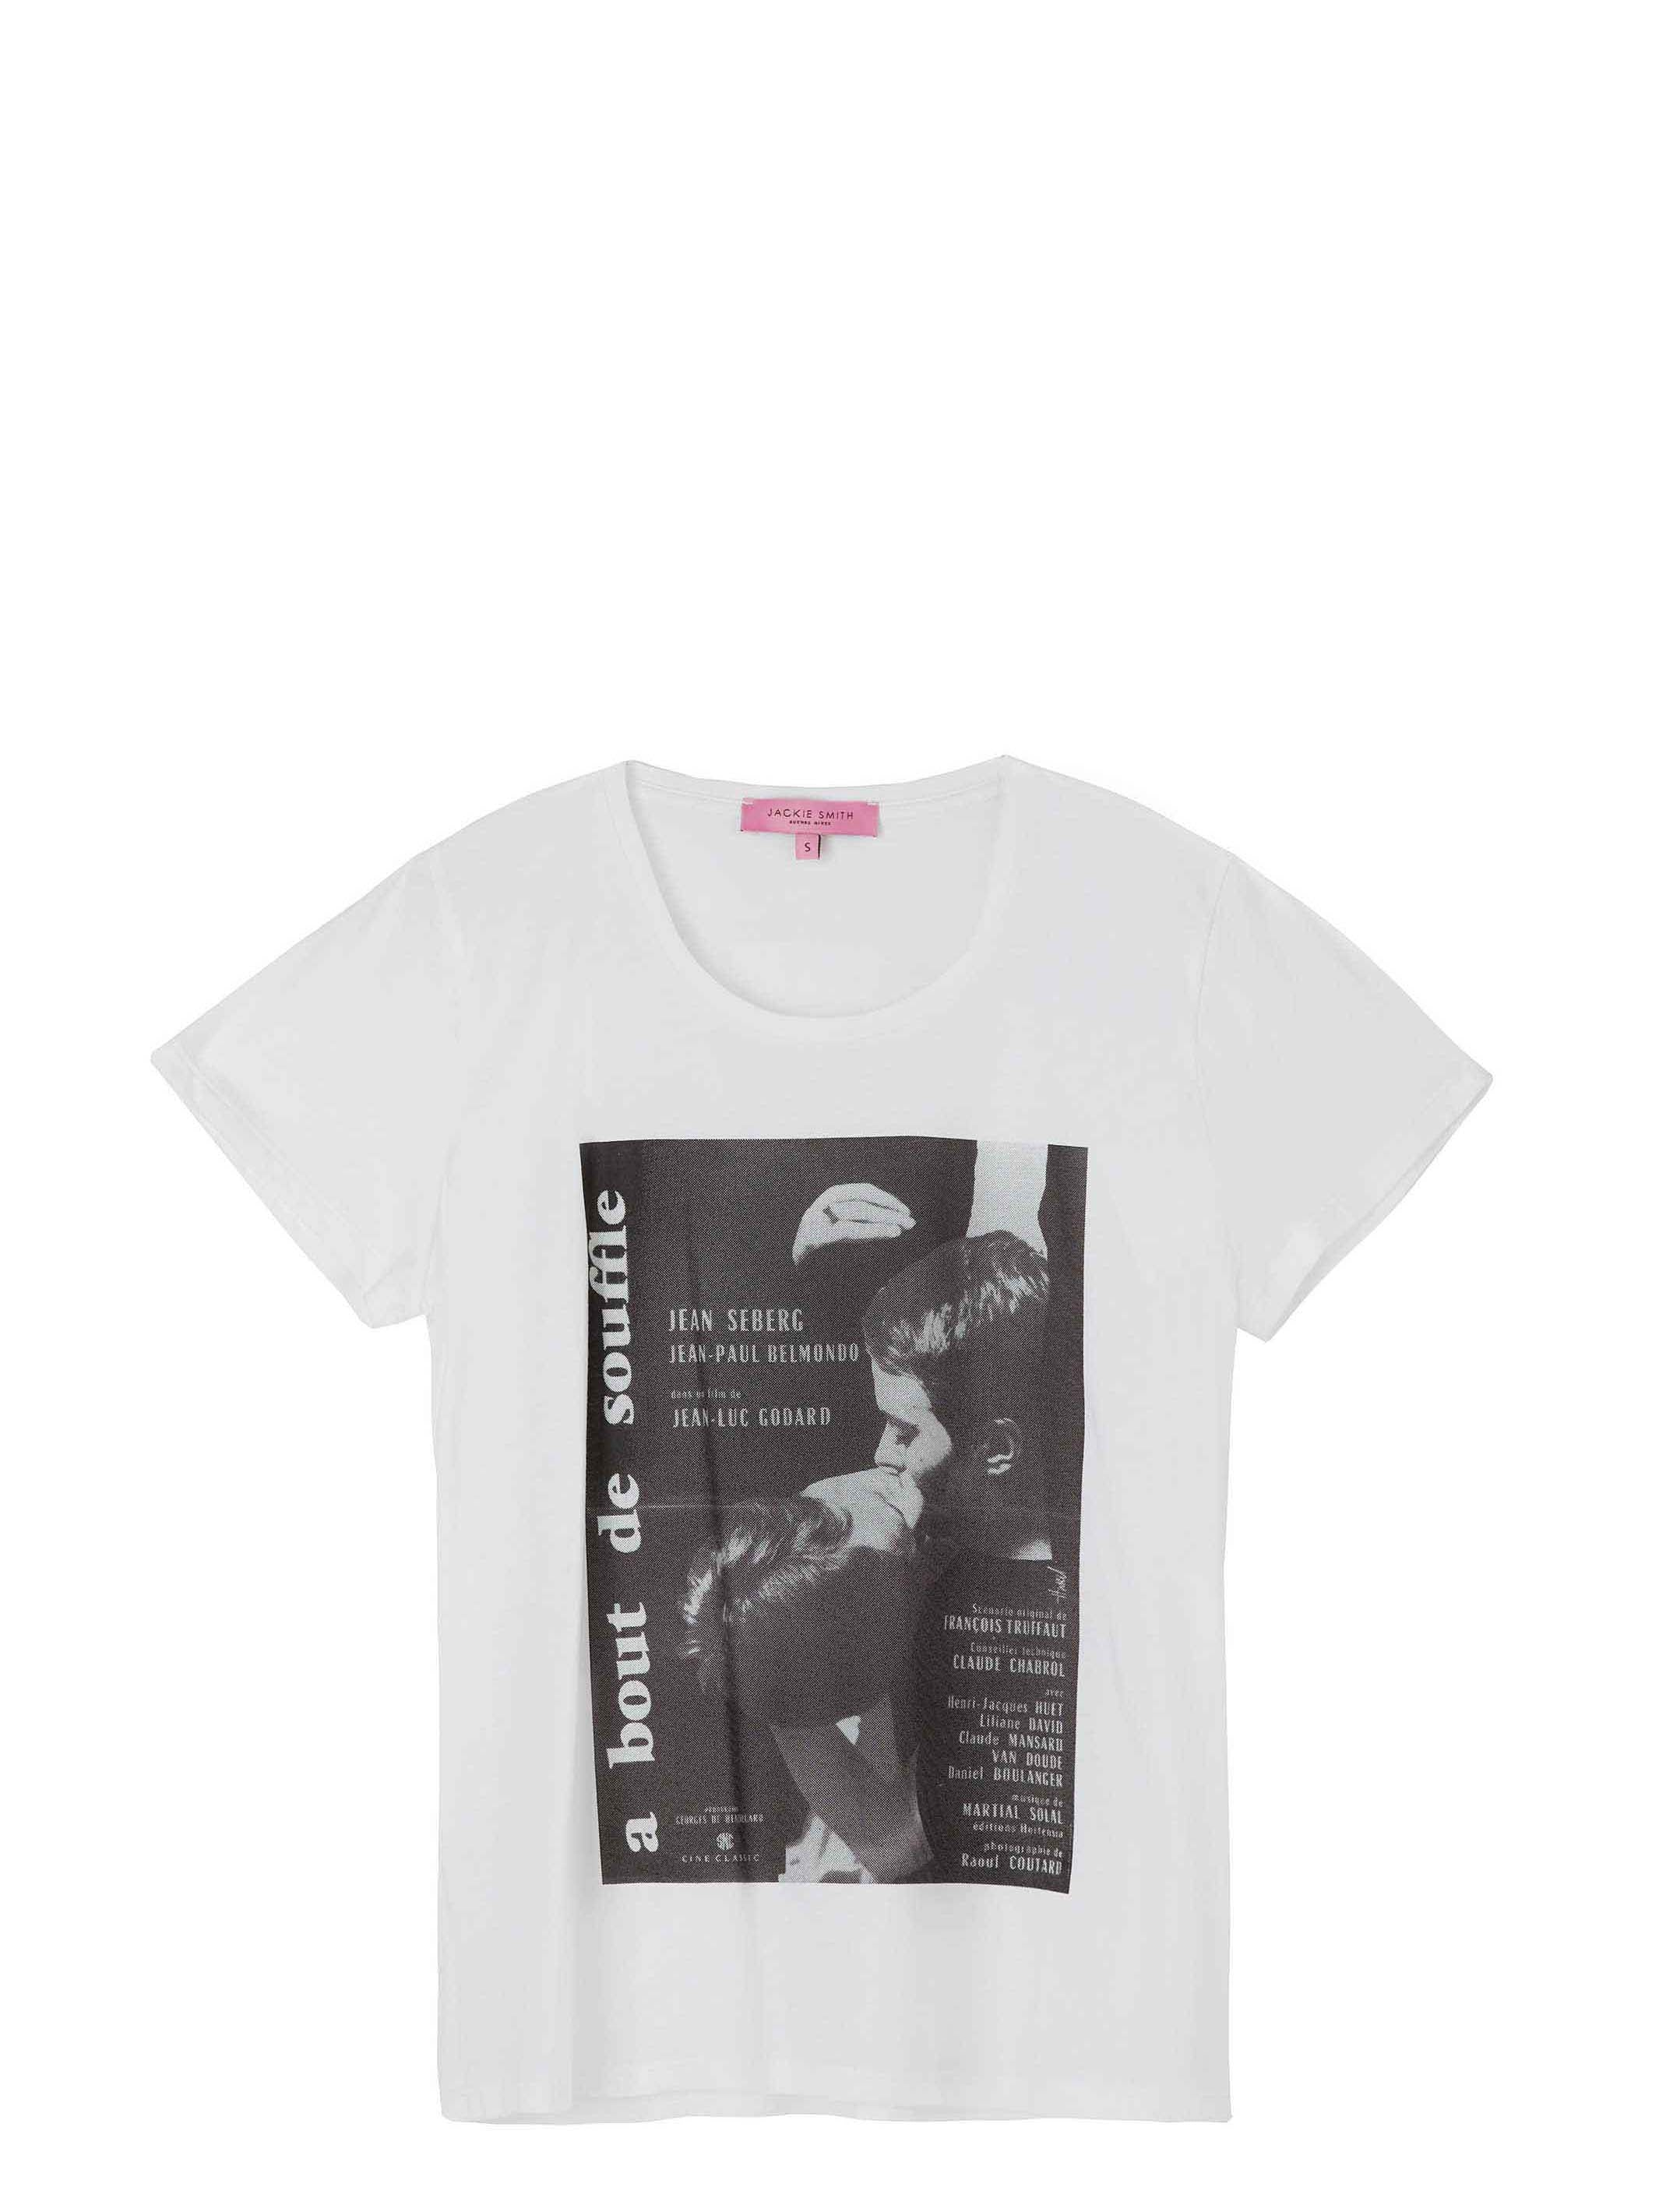 Breathless White T-shirt